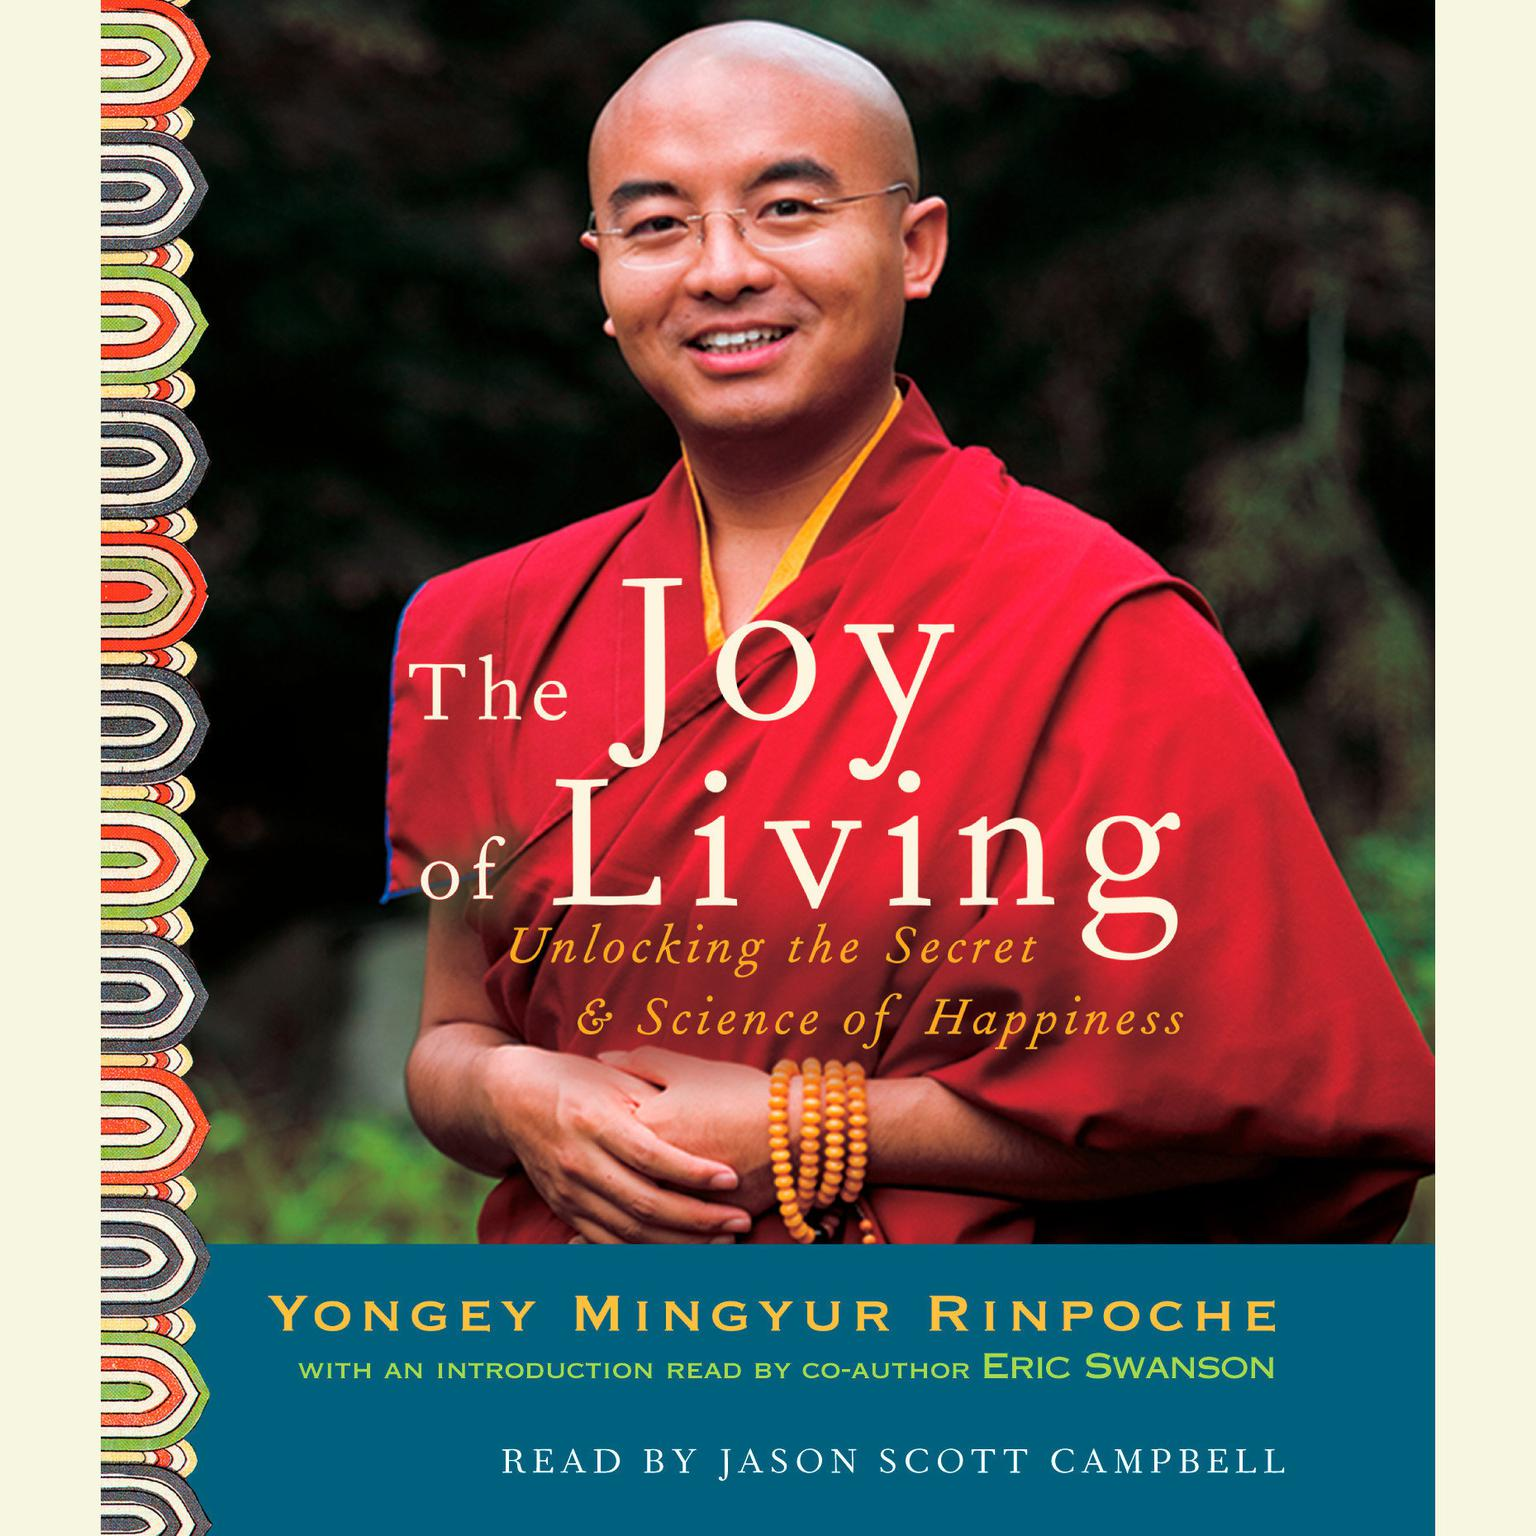 Printable The Joy of Living: Unlocking the Secret and Science of Happiness Audiobook Cover Art